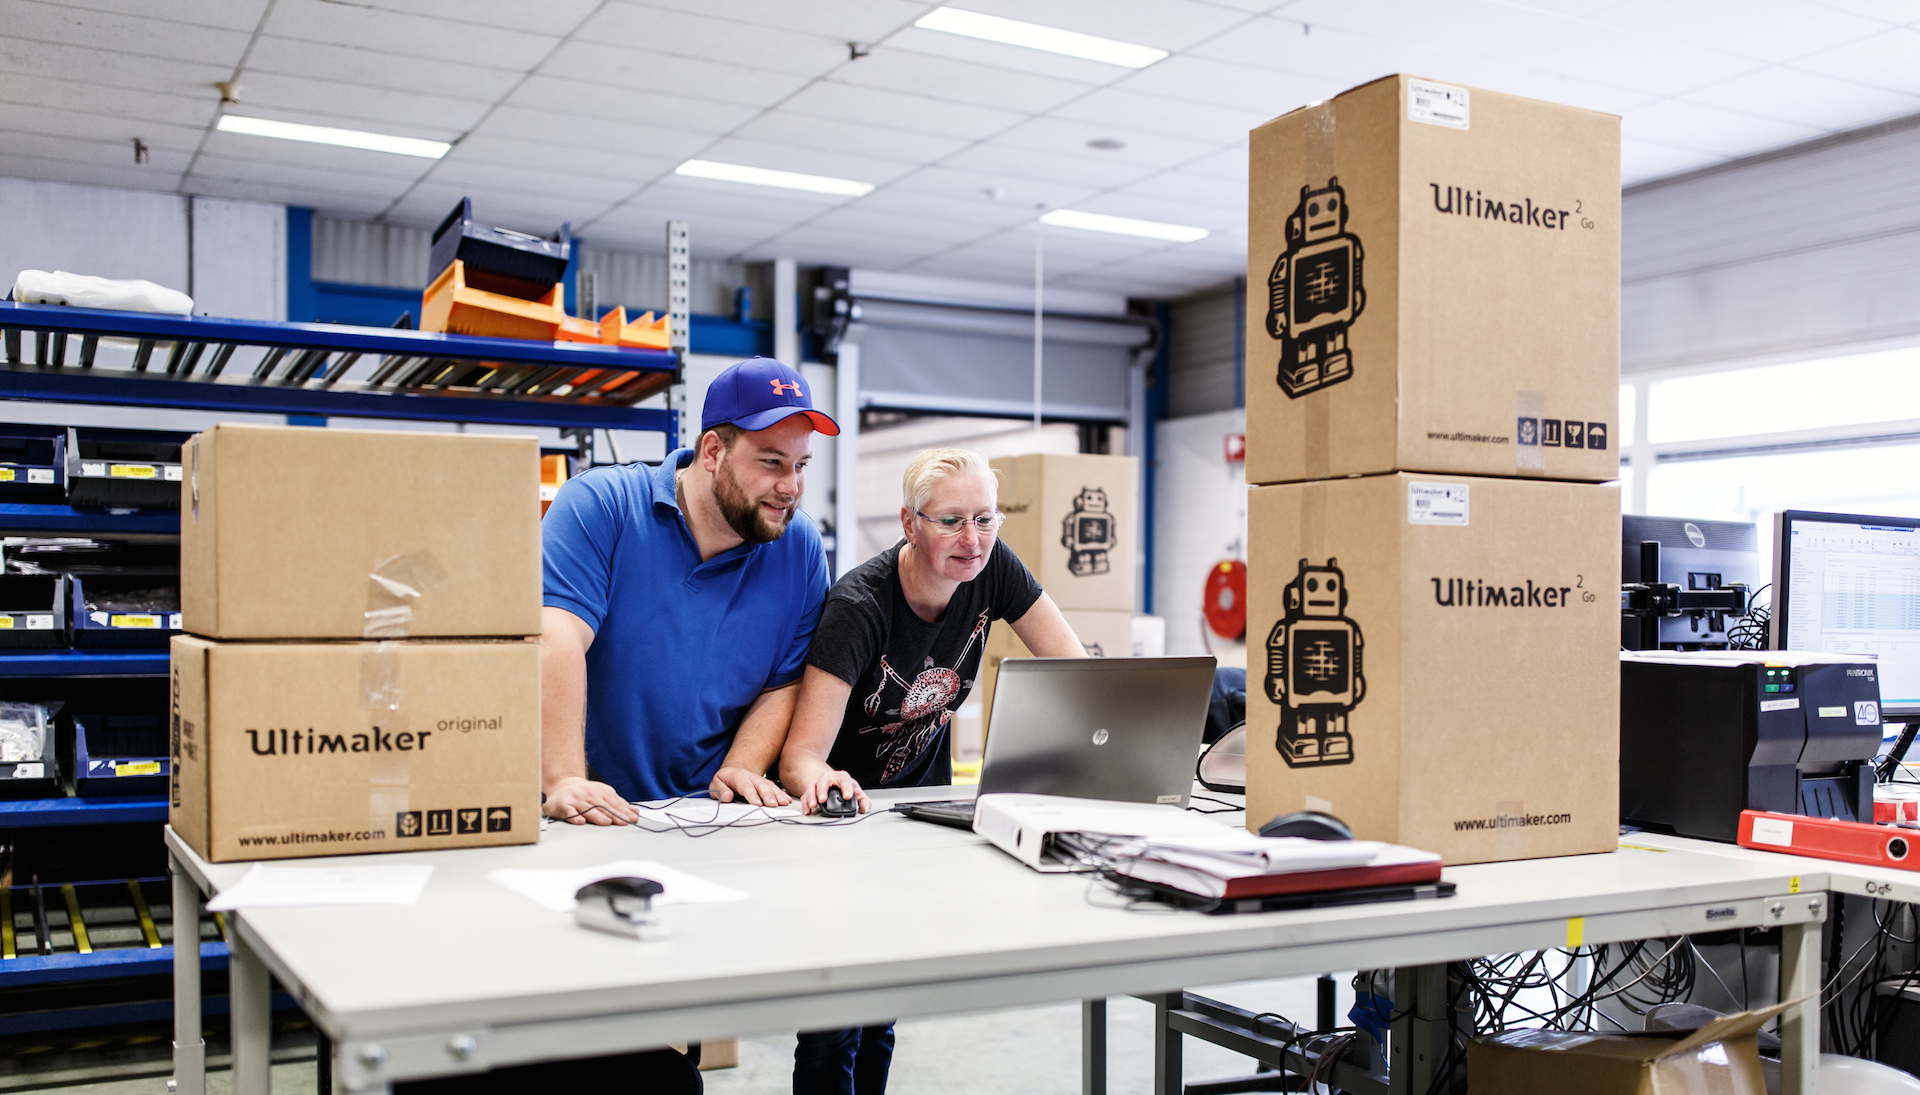 Ultimaker-supply-chain-and-assembly.jpg